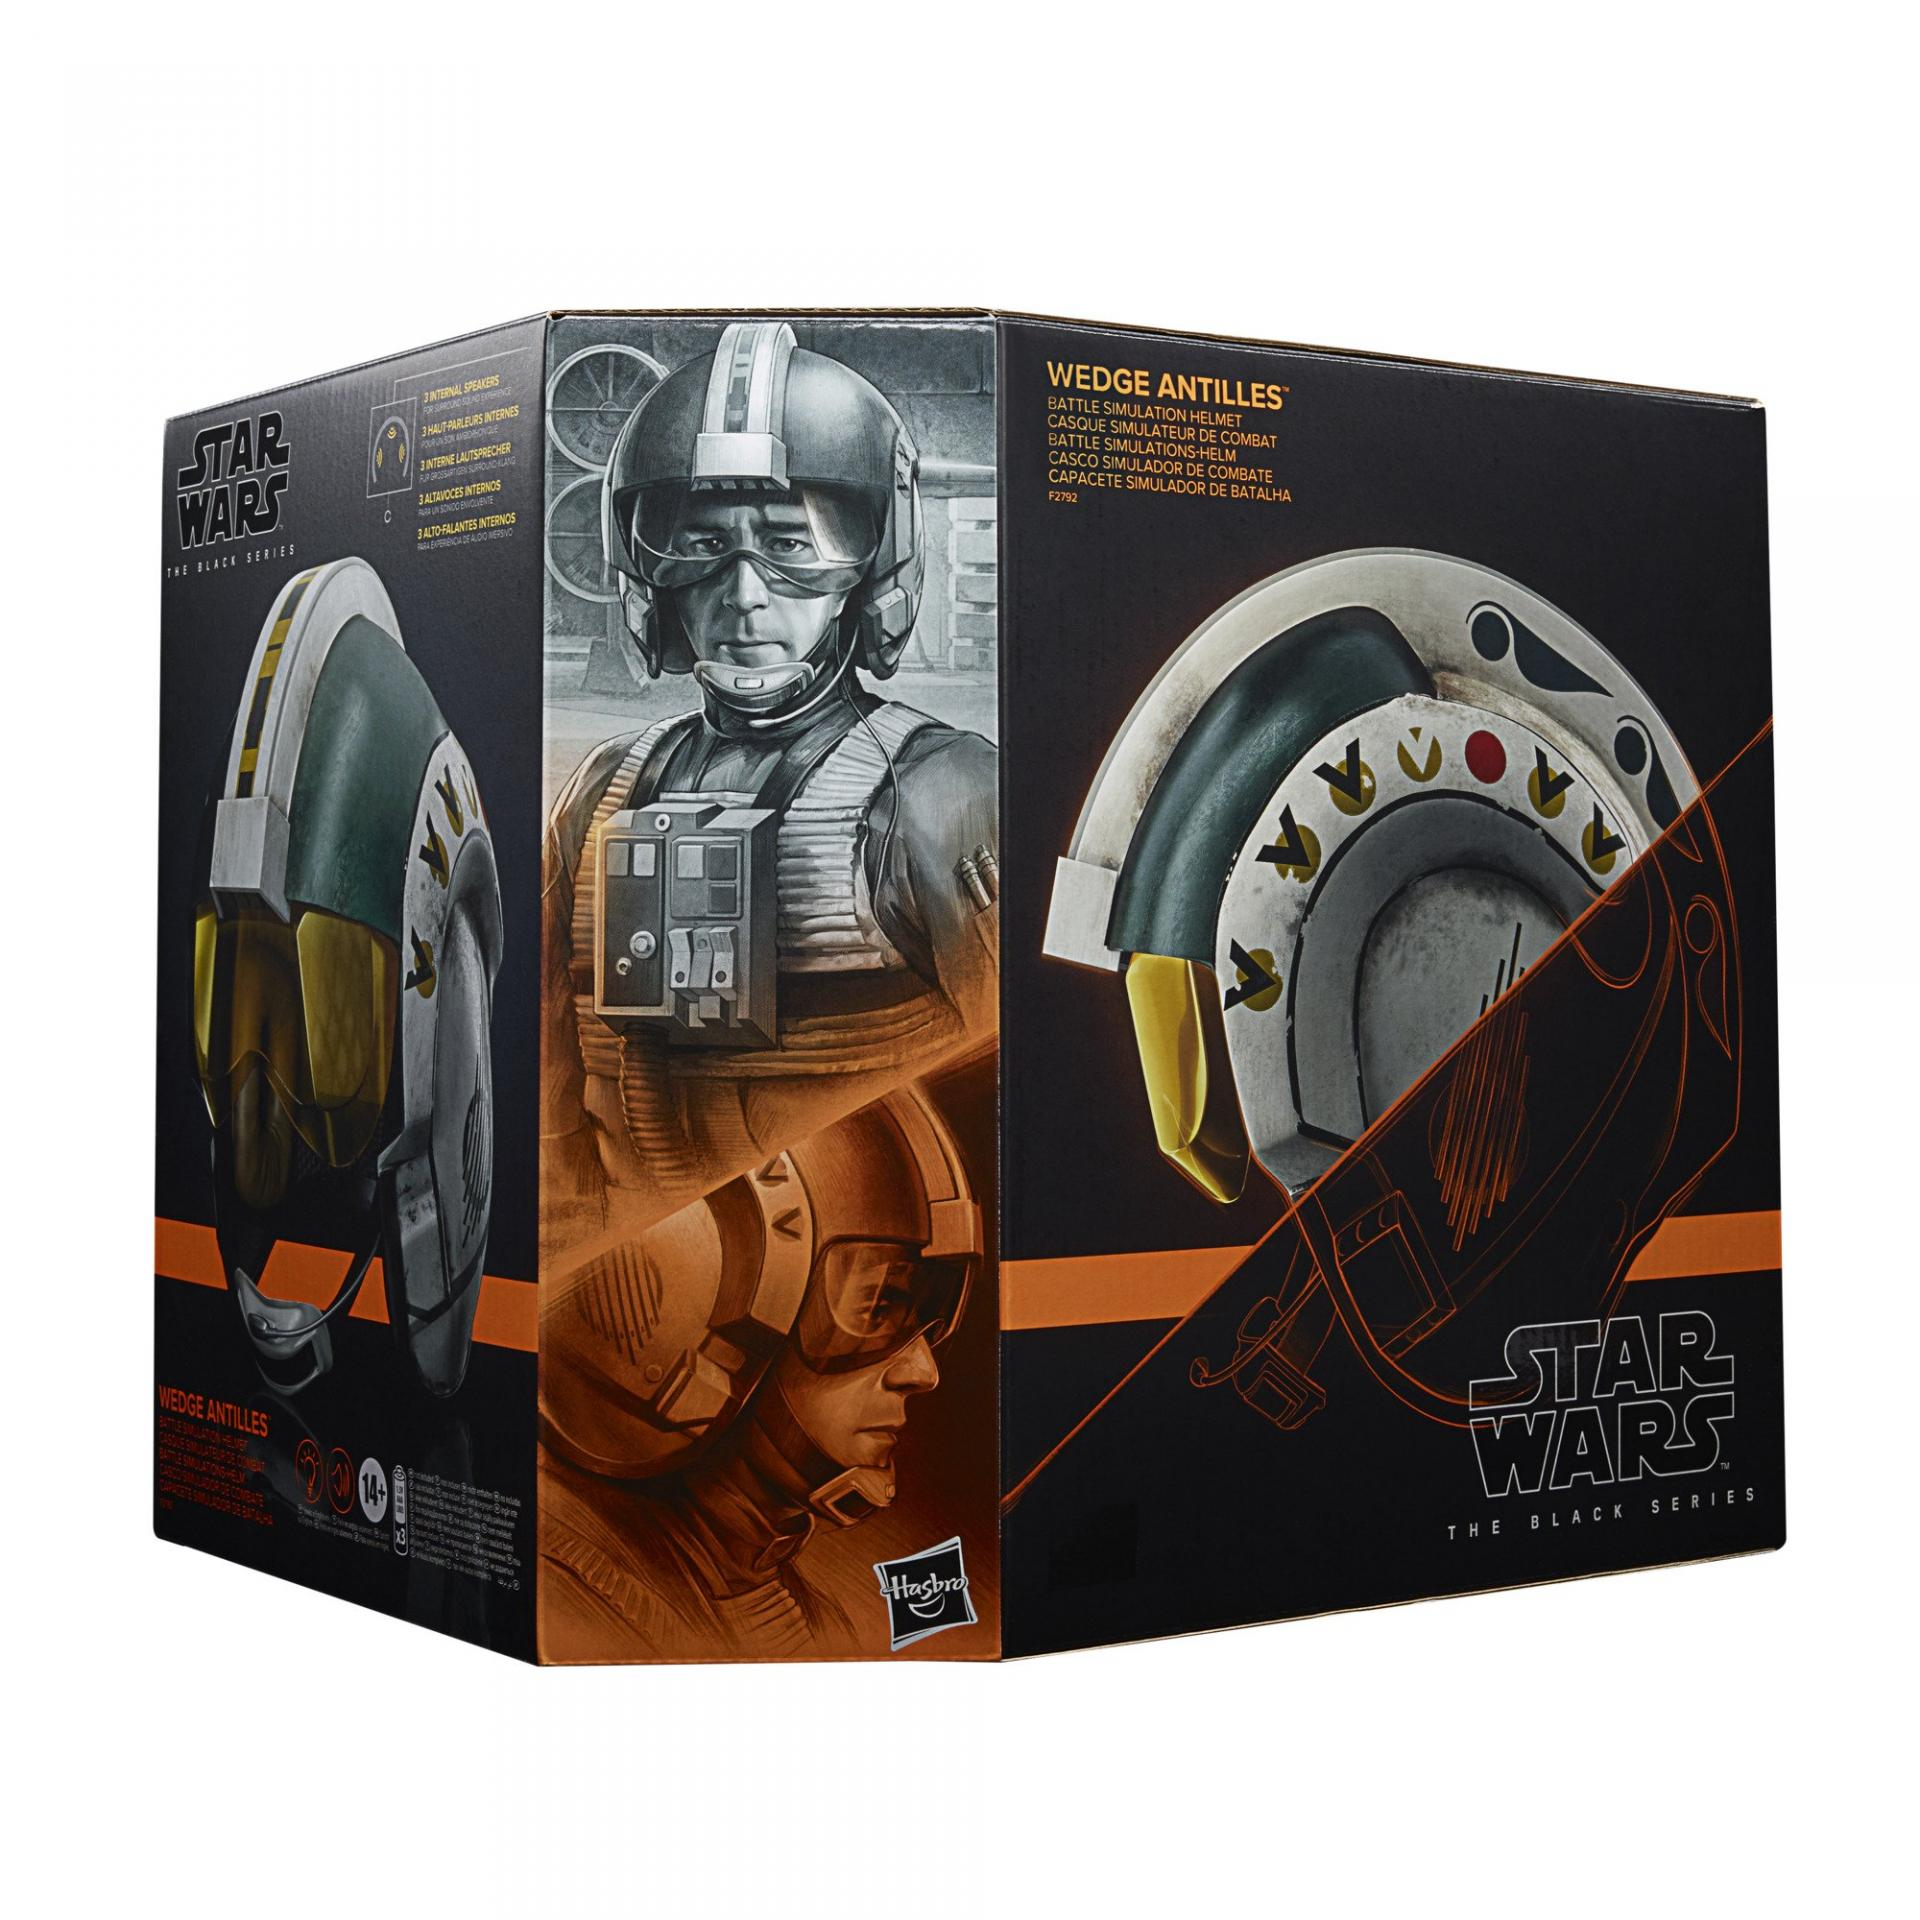 Star wars the black series wedge antilles battle simulations10